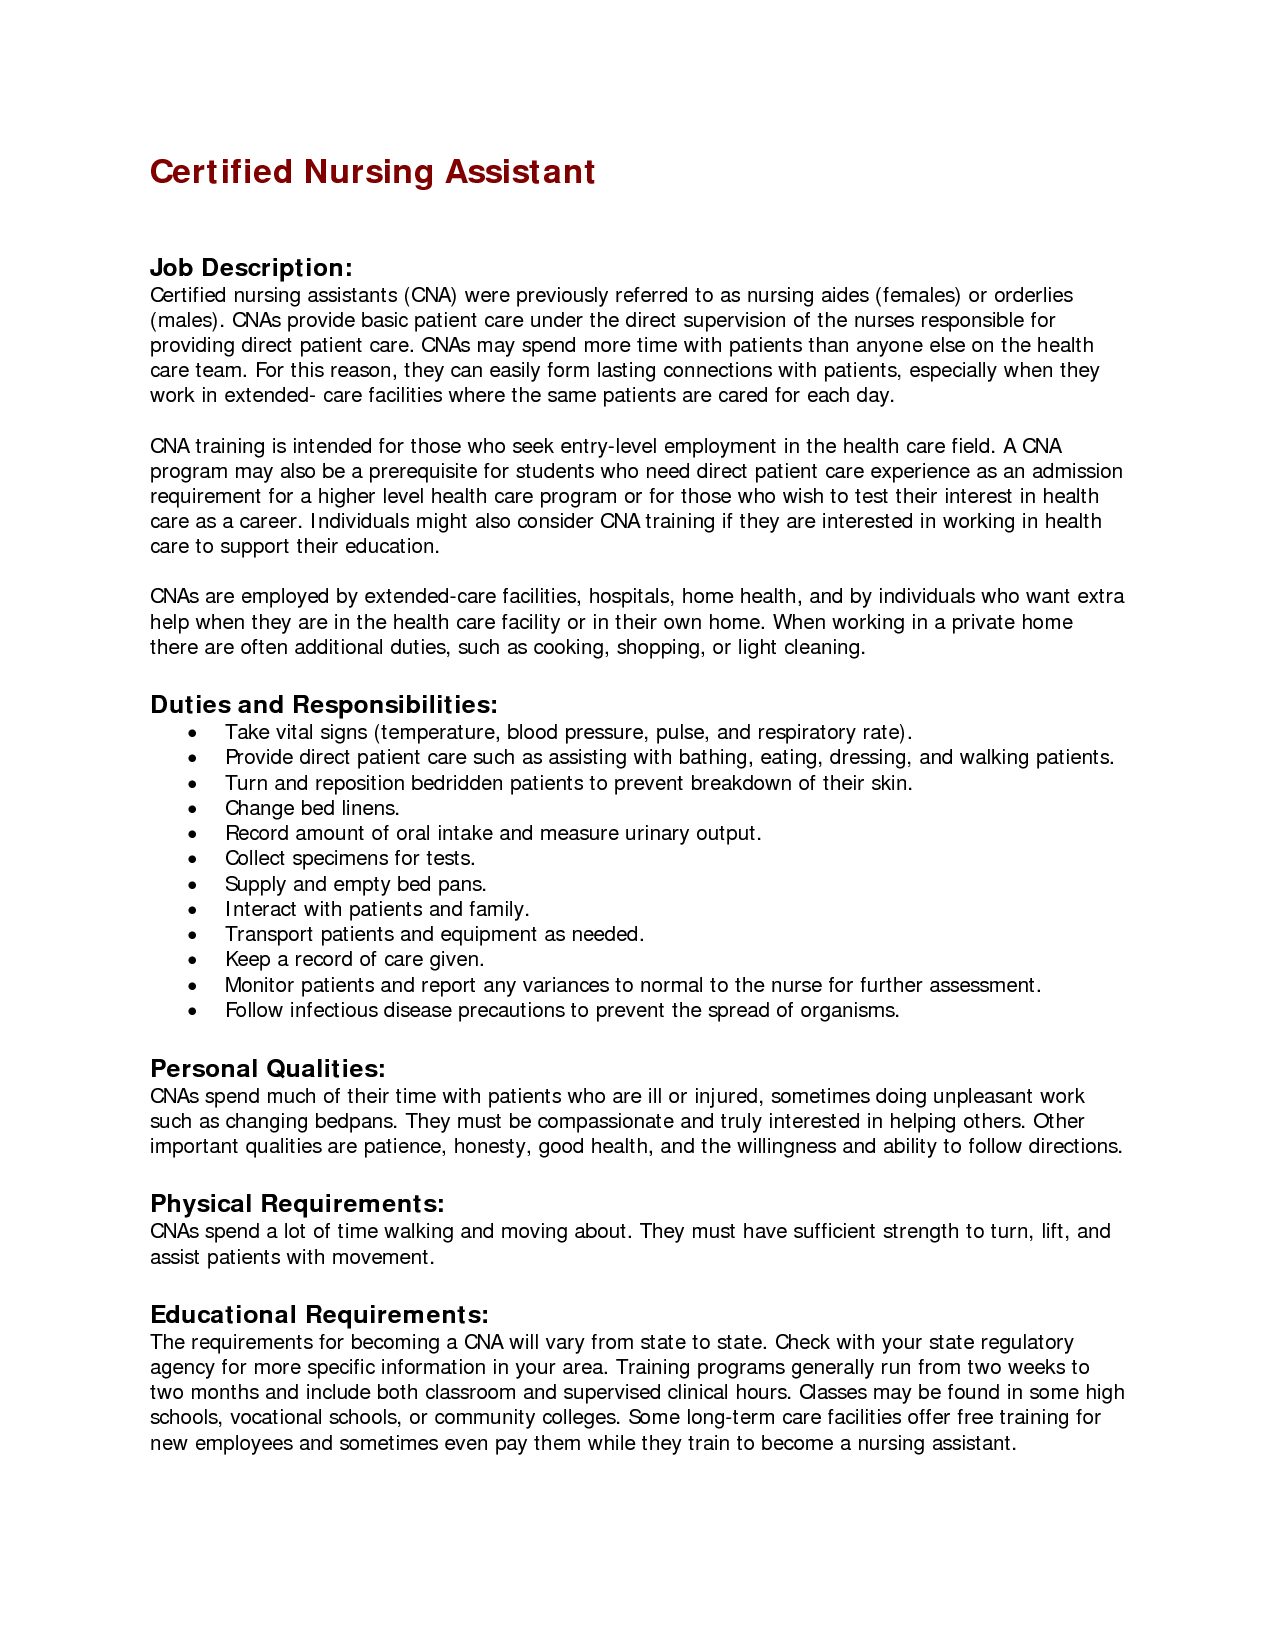 nursing assistant duties and responsibilities resume - Cna Job Description For Resume